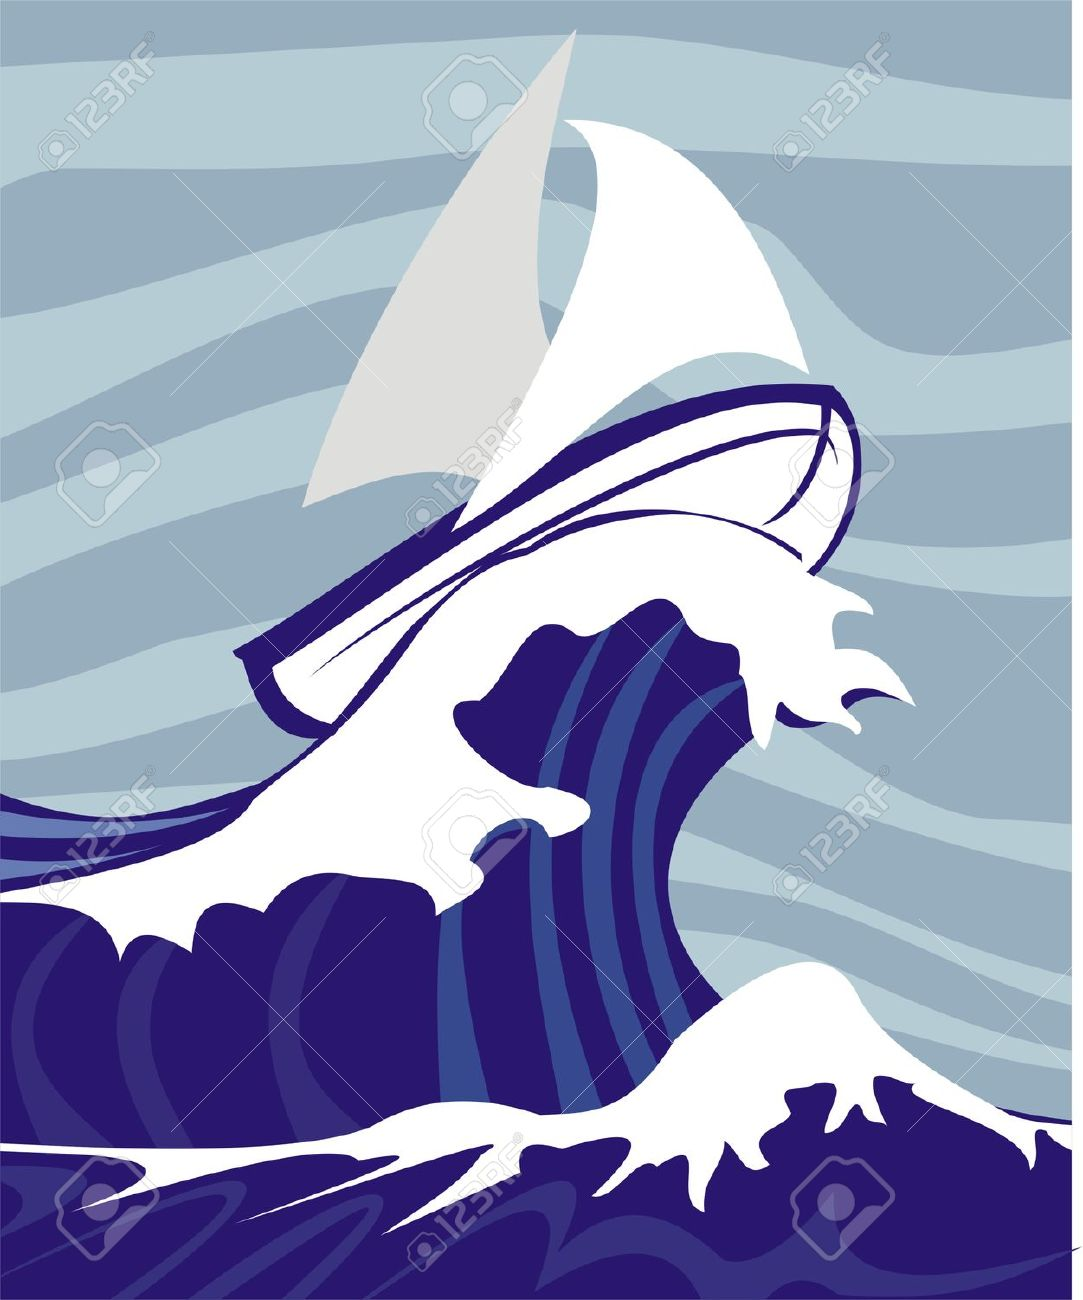 Live ocean weather clipart.